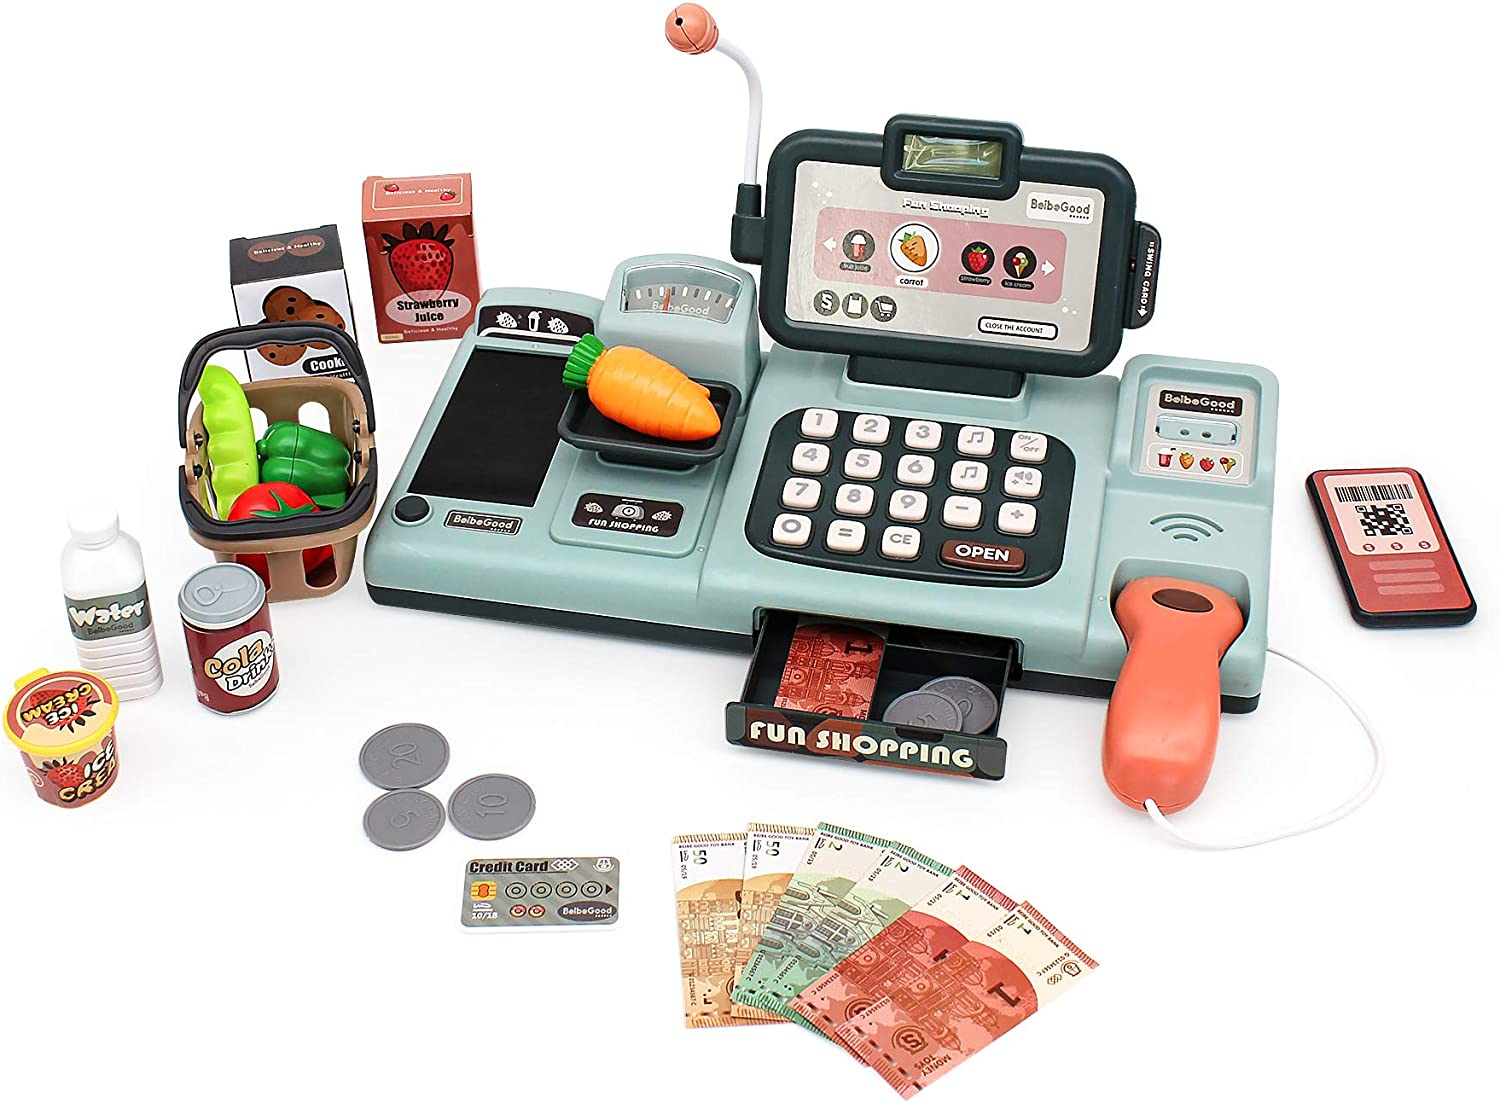 Toy Cash Register for Kids Shopping Pretend Play Calculator Set with 25pcs Accessories Includes Realistic Scanner & Sound & Microphone & Pretend Credit Card & Play Food Educational Toy for Girls Boys